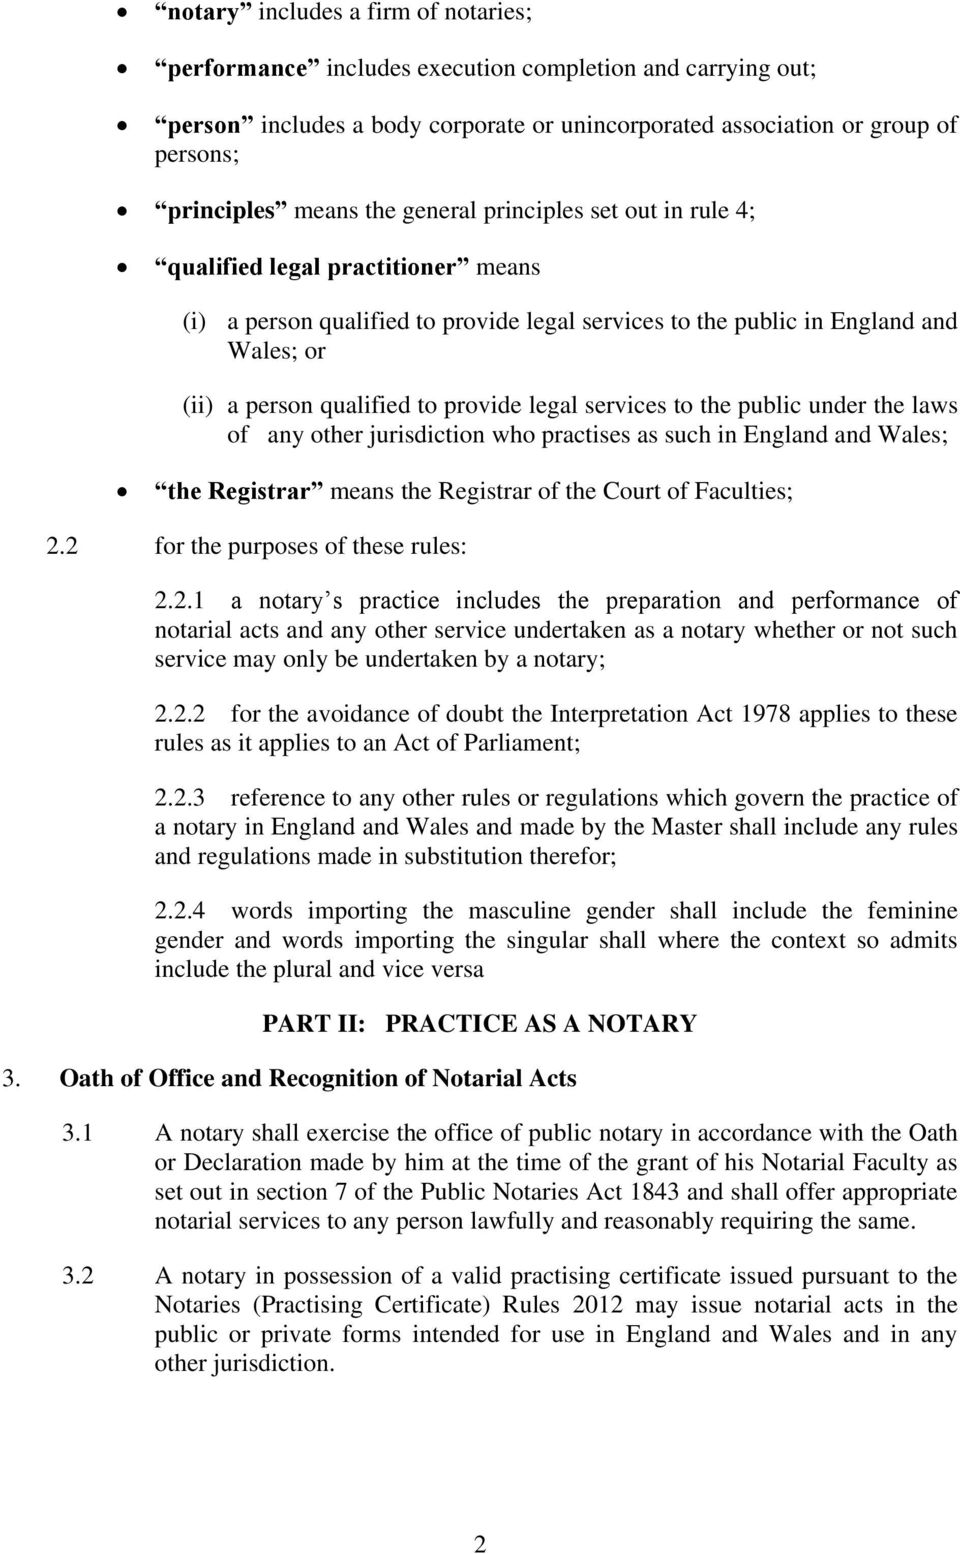 legal services to the public under the laws of any other jurisdiction who practises as such in England and Wales; the Registrar means the Registrar of the Court of Faculties; 2.